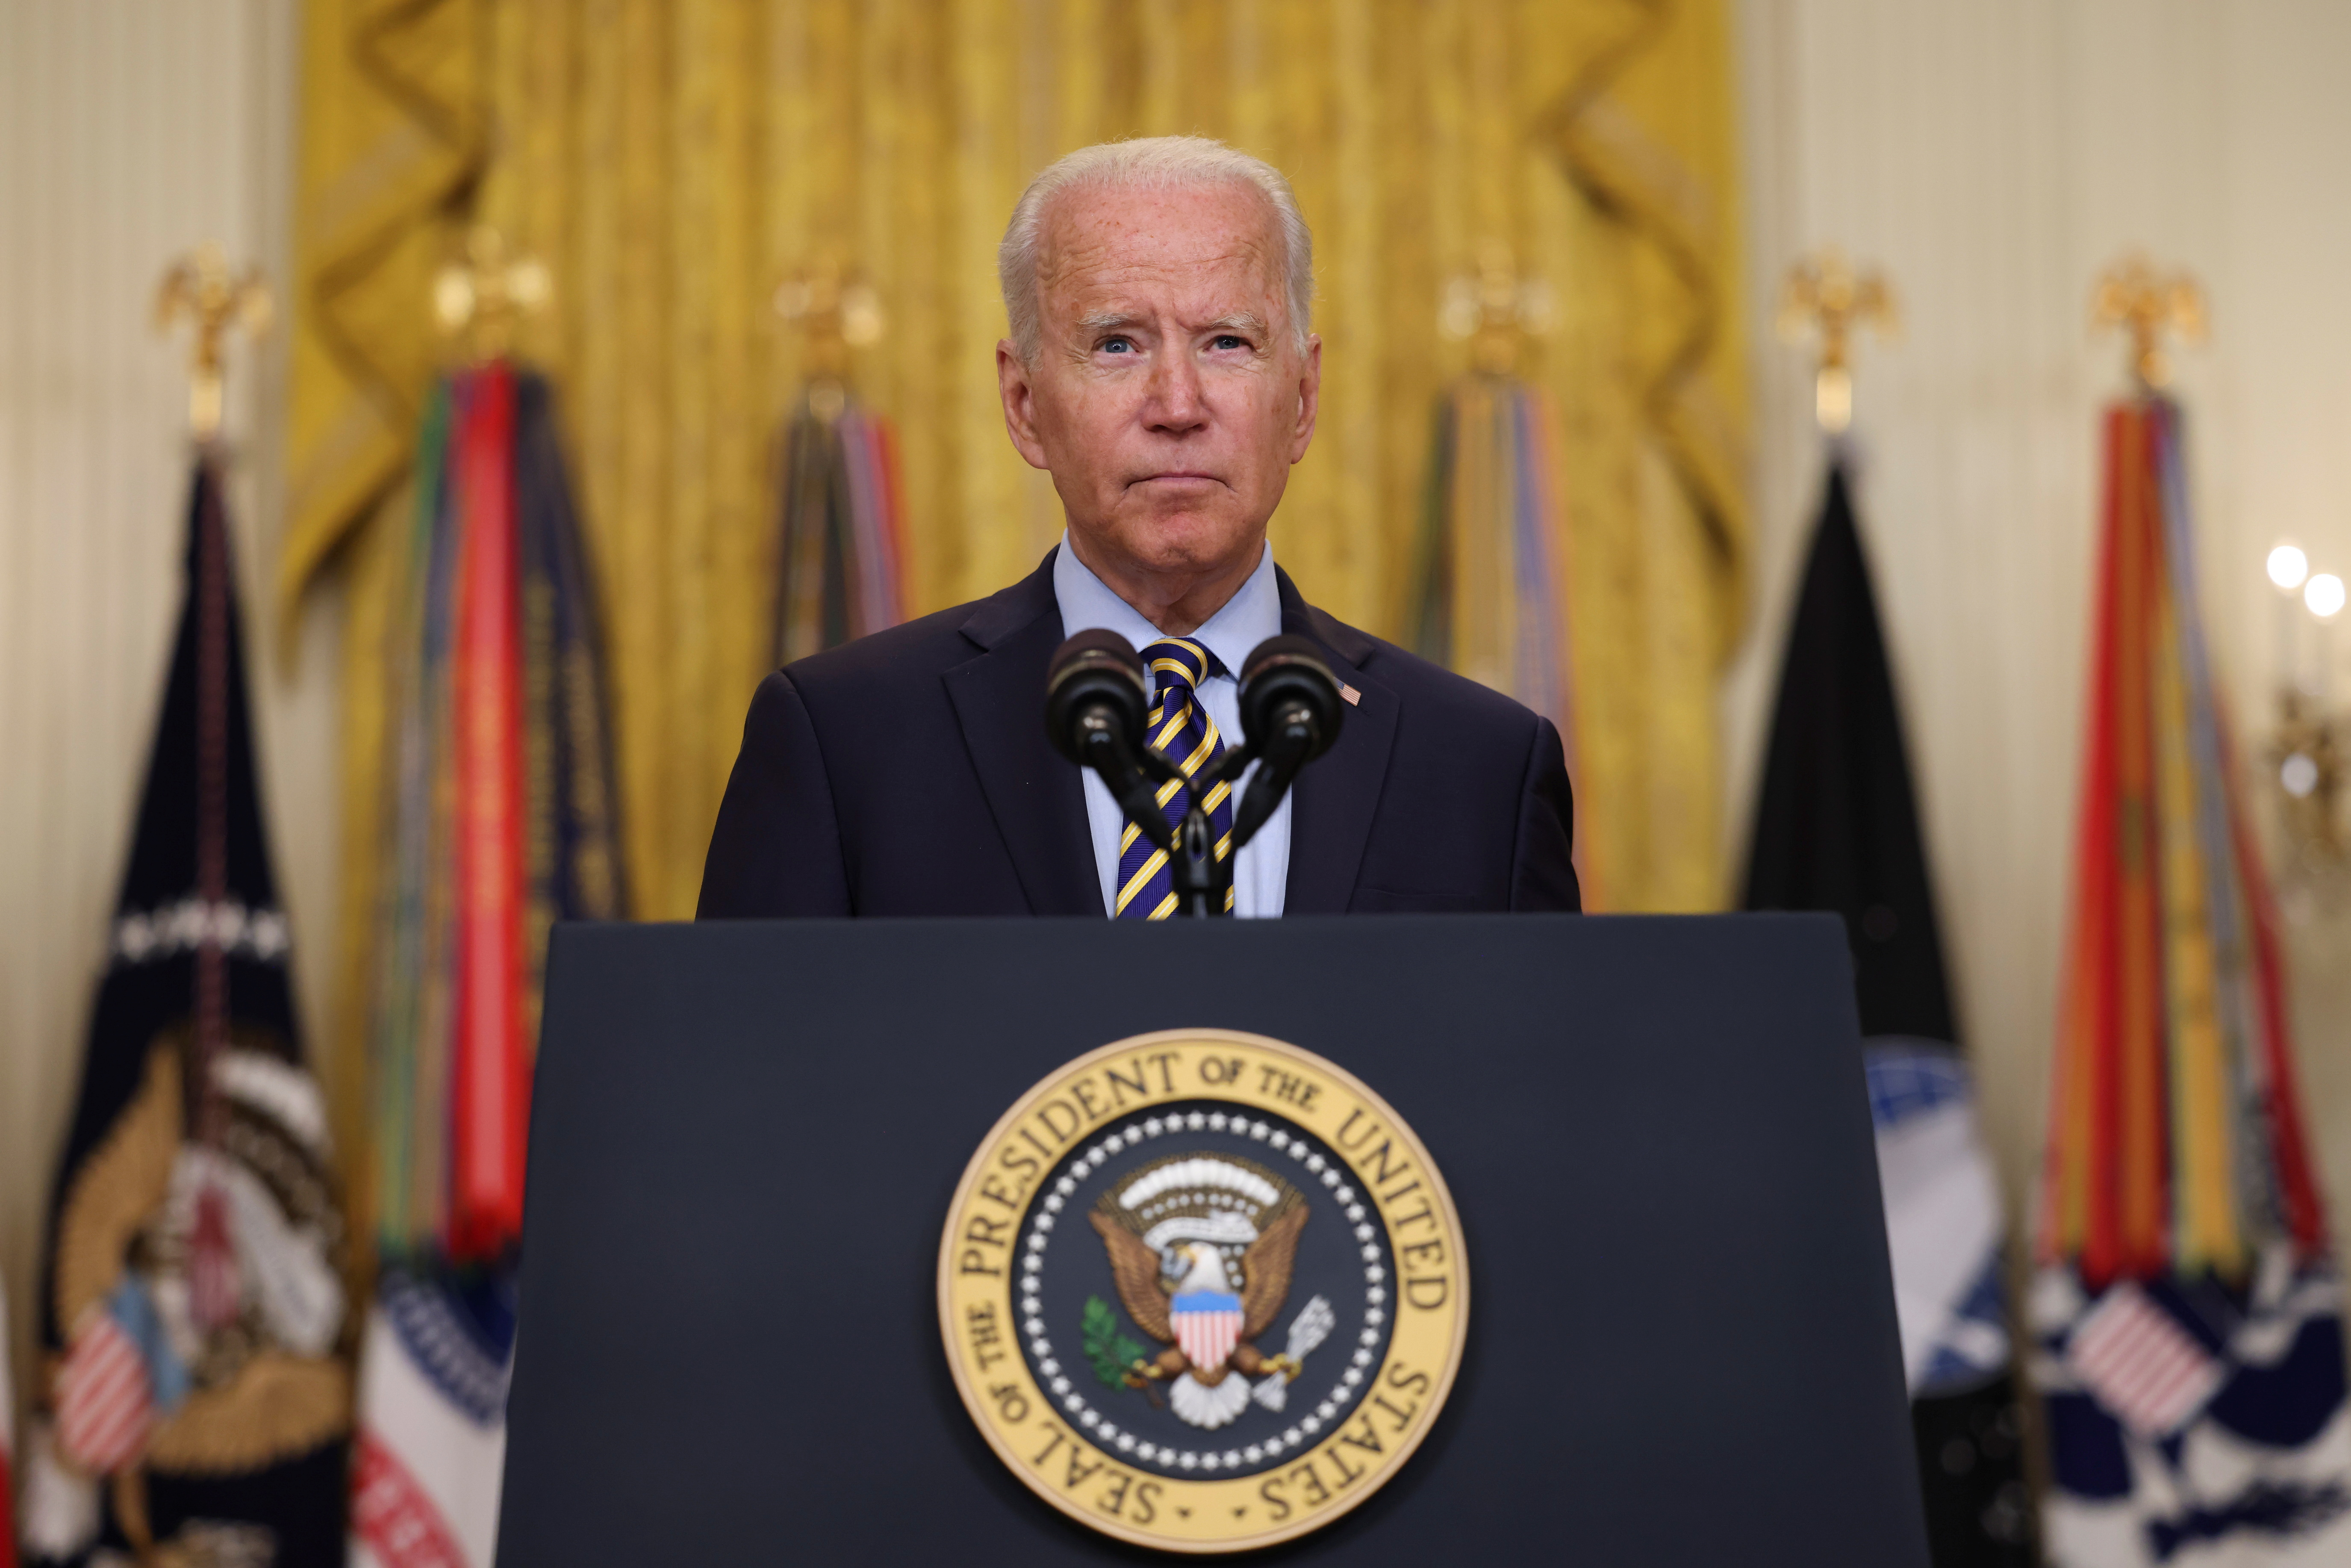 U.S. President Joe Biden delivers remarks on the administration's continued drawdown efforts in Afghanistan in a speech from the East Room at the White House in Washington U.S., July 8, 2021. REUTERS/Evelyn Hockstein